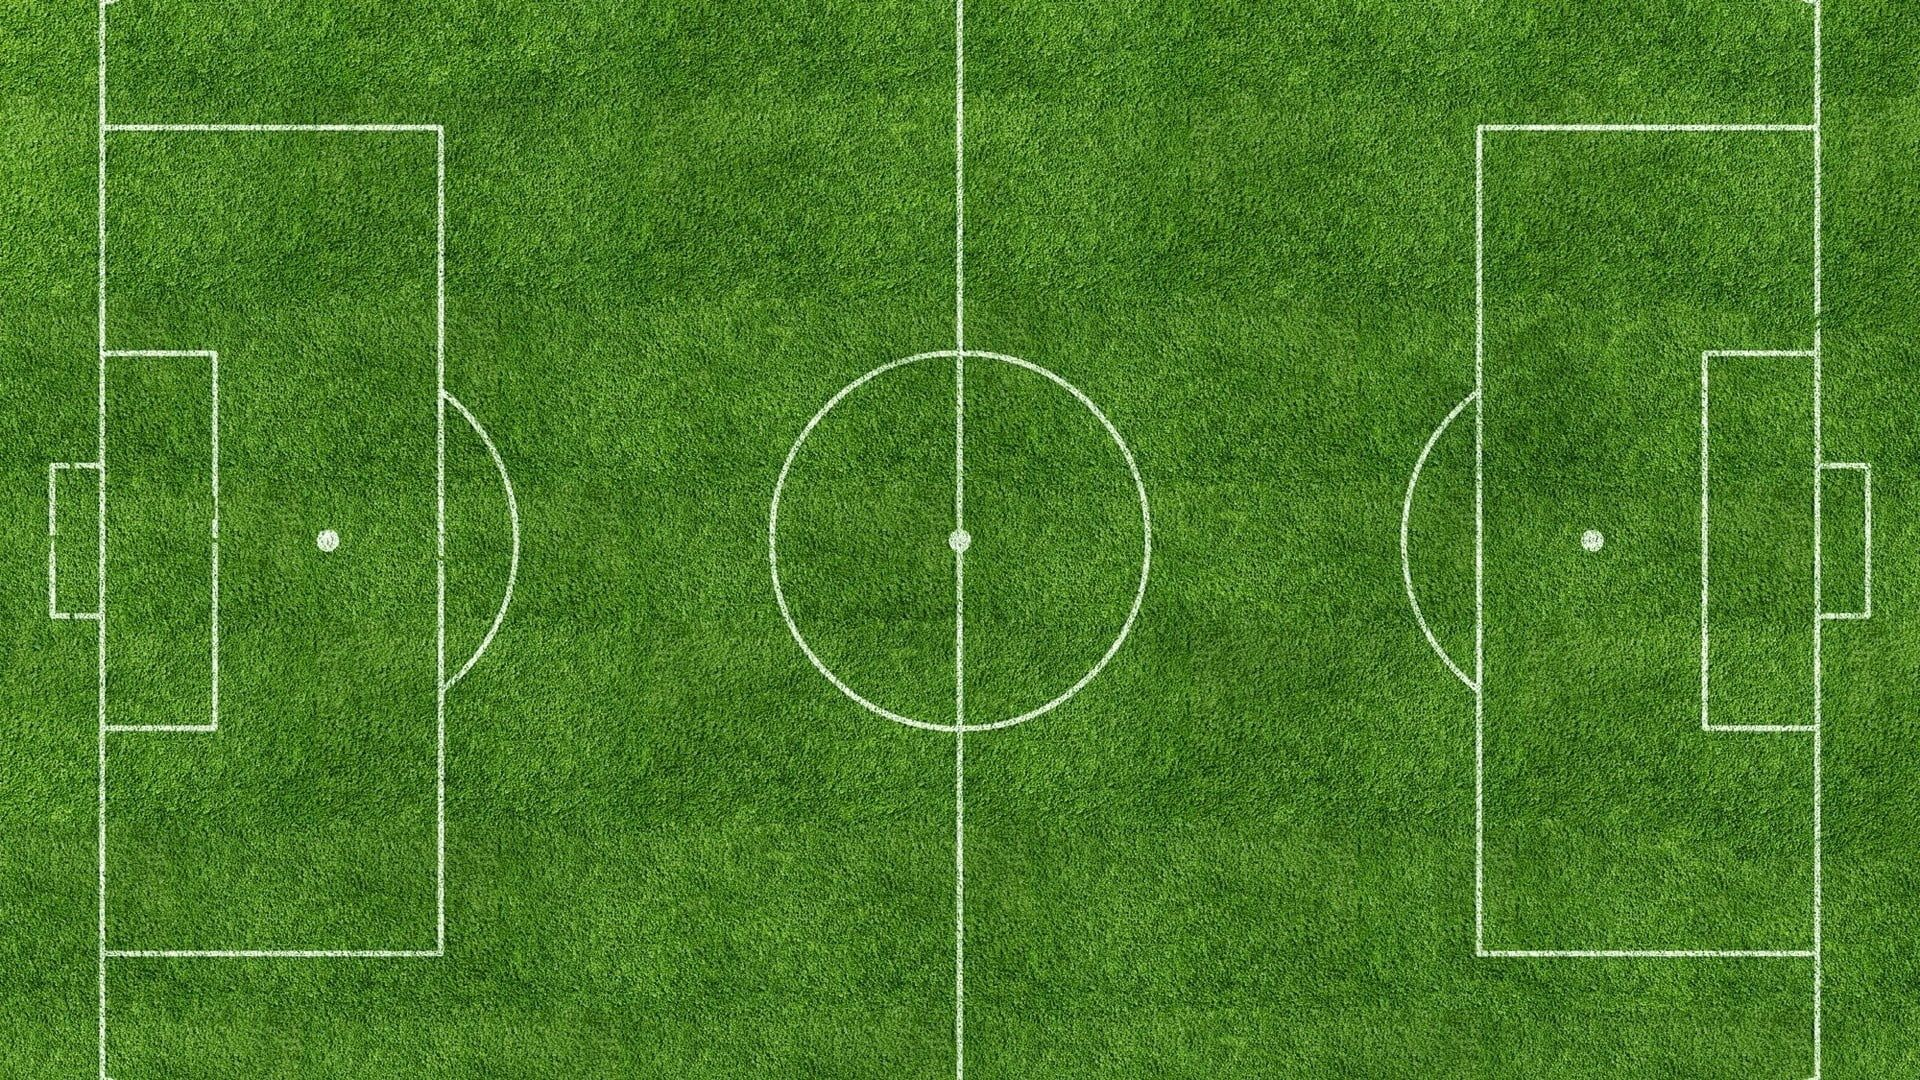 Soccer Field Soccer Pitches Grass 1080p Wallpaper Hdwallpaper Desktop In 2020 Soccer Soccer Field Football Pitch